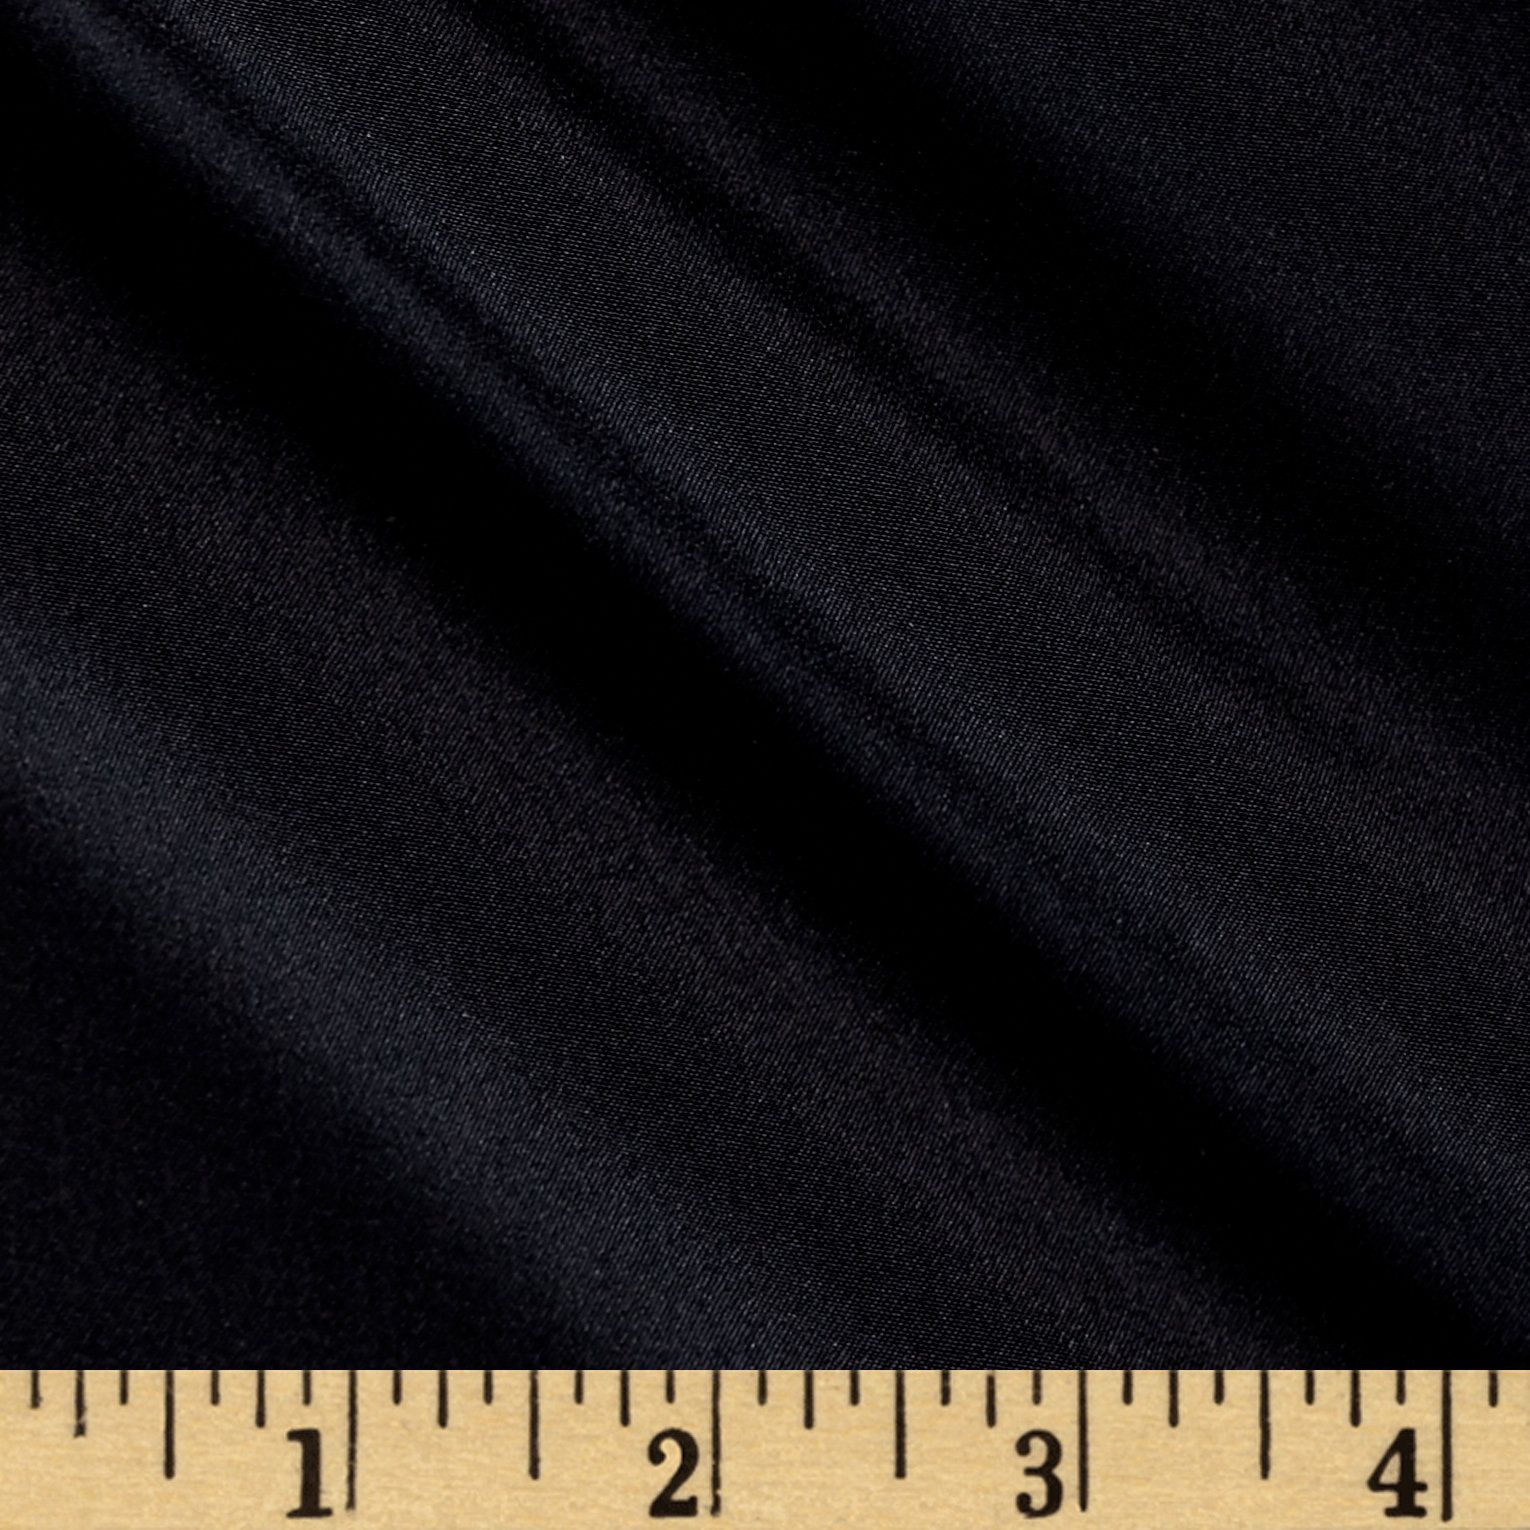 100% Silk Crepe de Chine Black Fabric by Stardom Specialty in USA